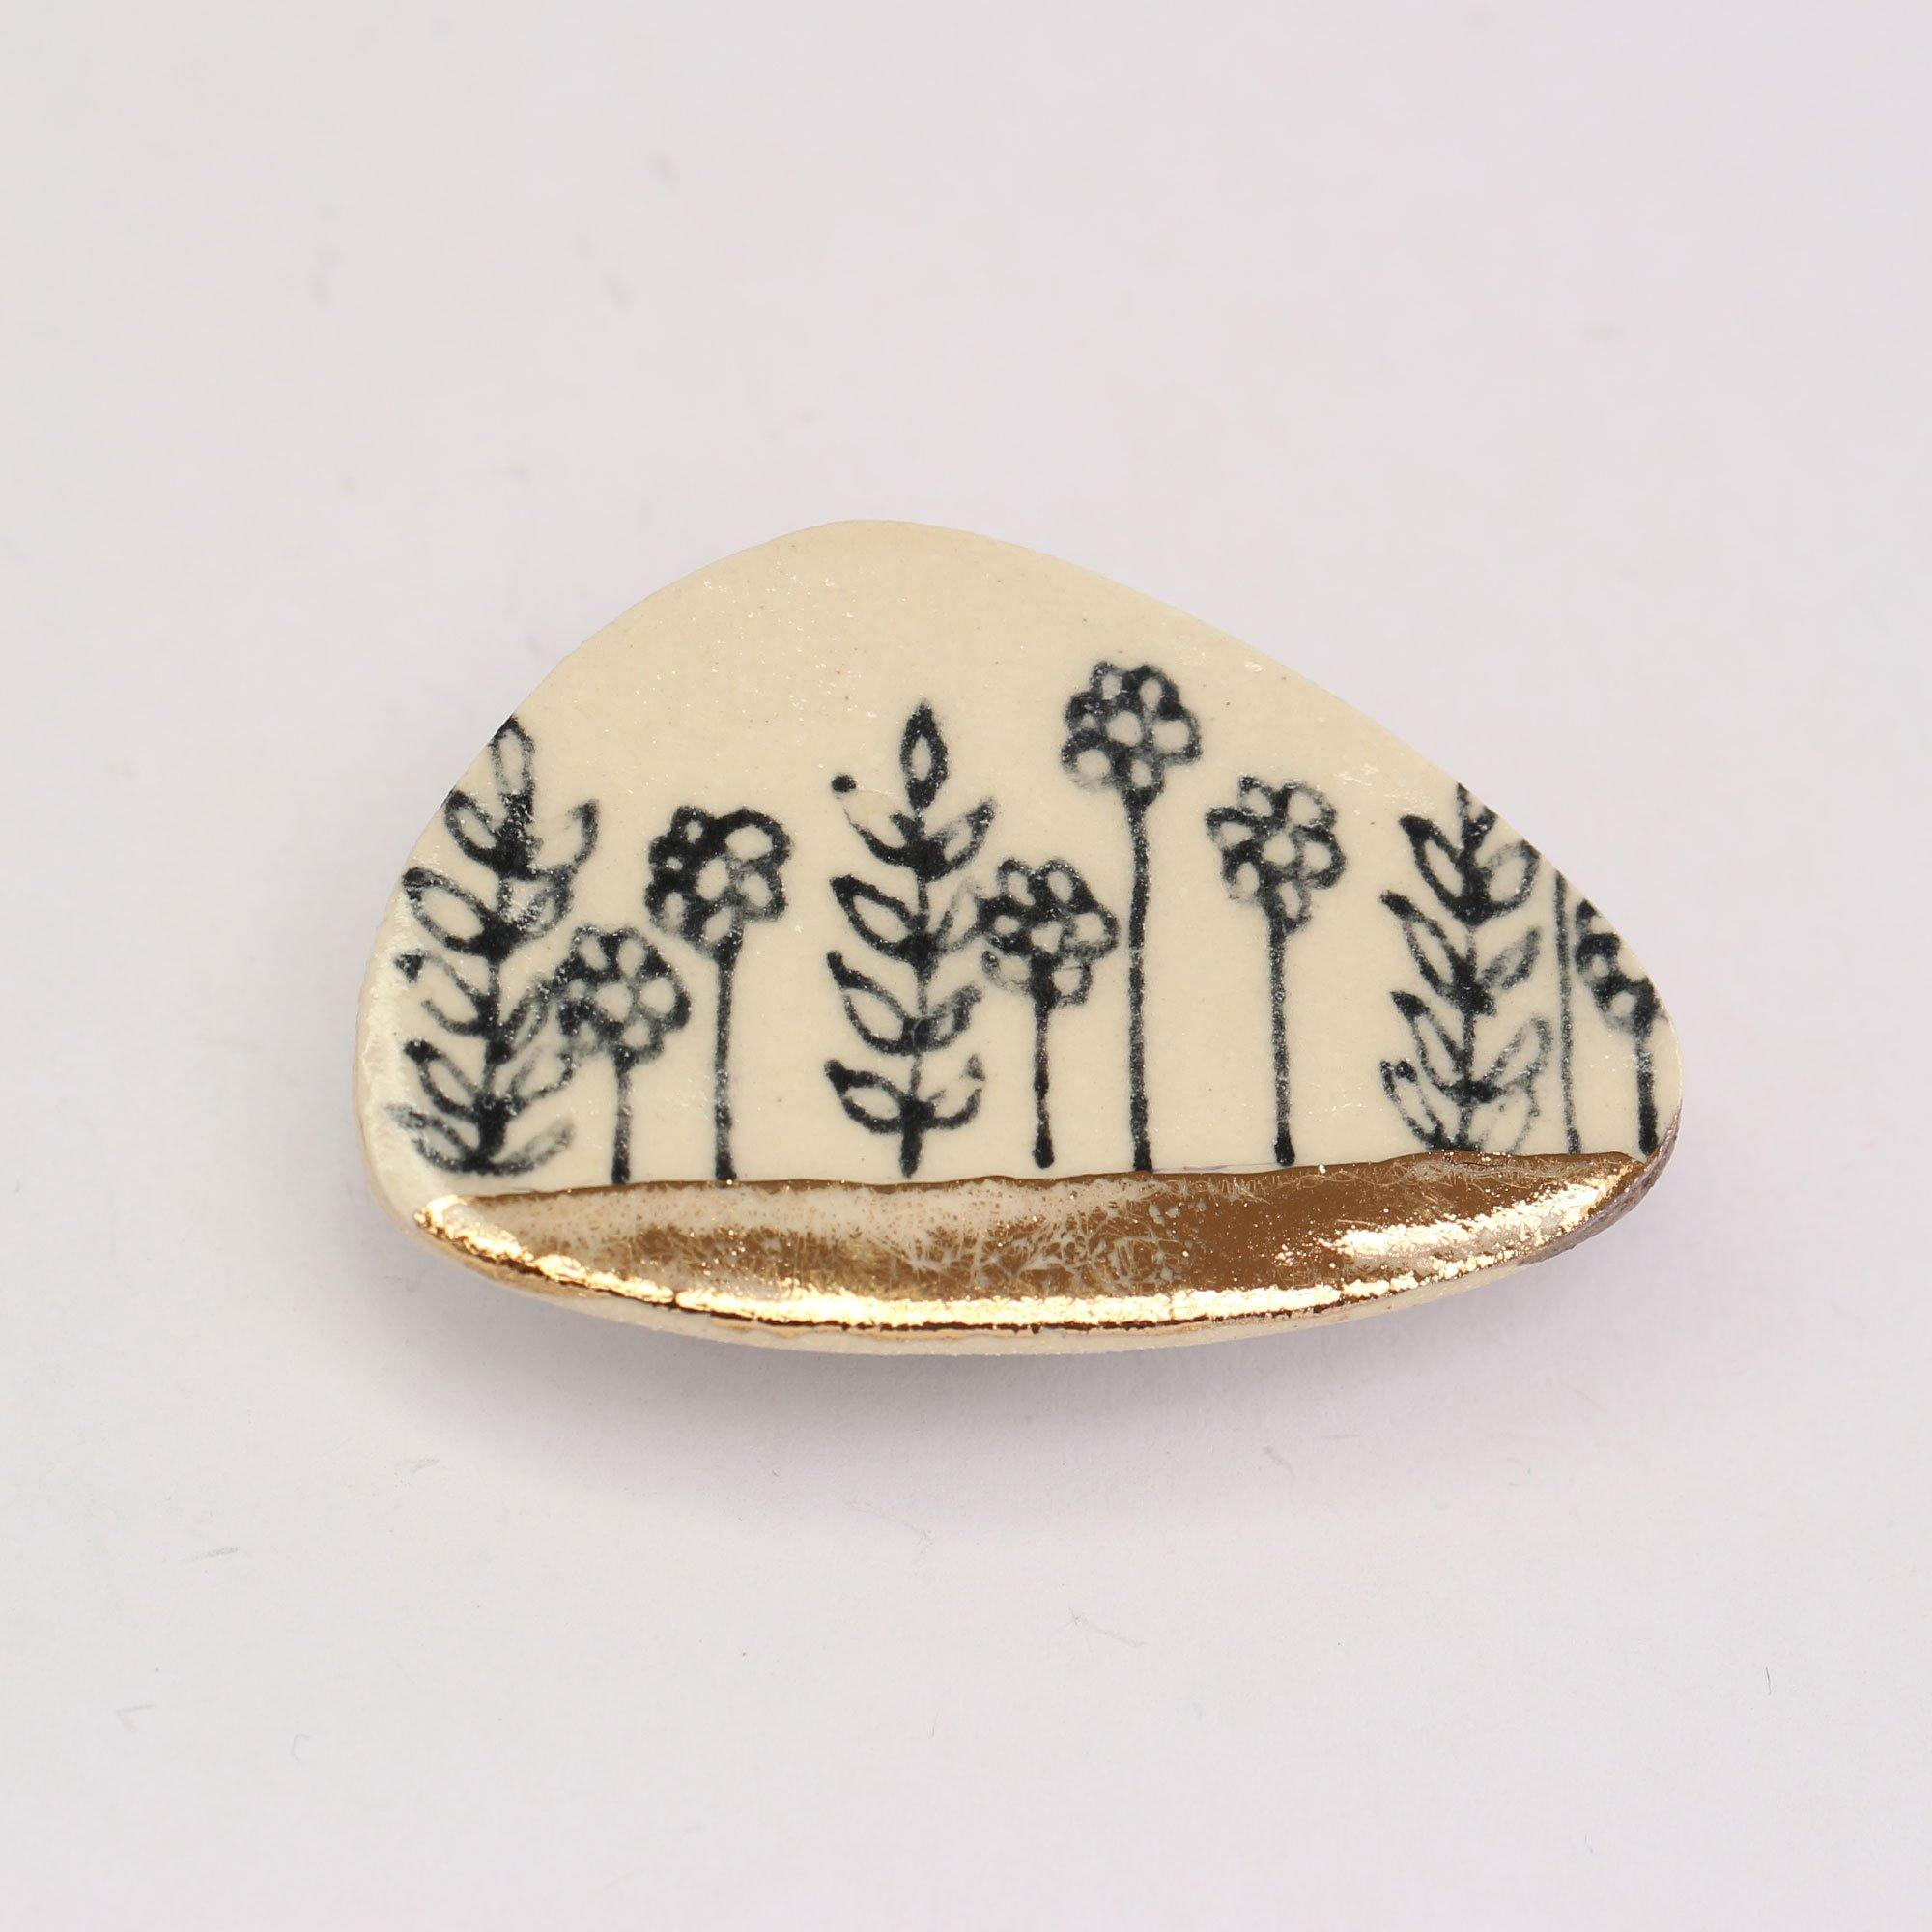 Leaf & Flowers Gold Lustre Ceramic Brooch, Building Toys by Insideout